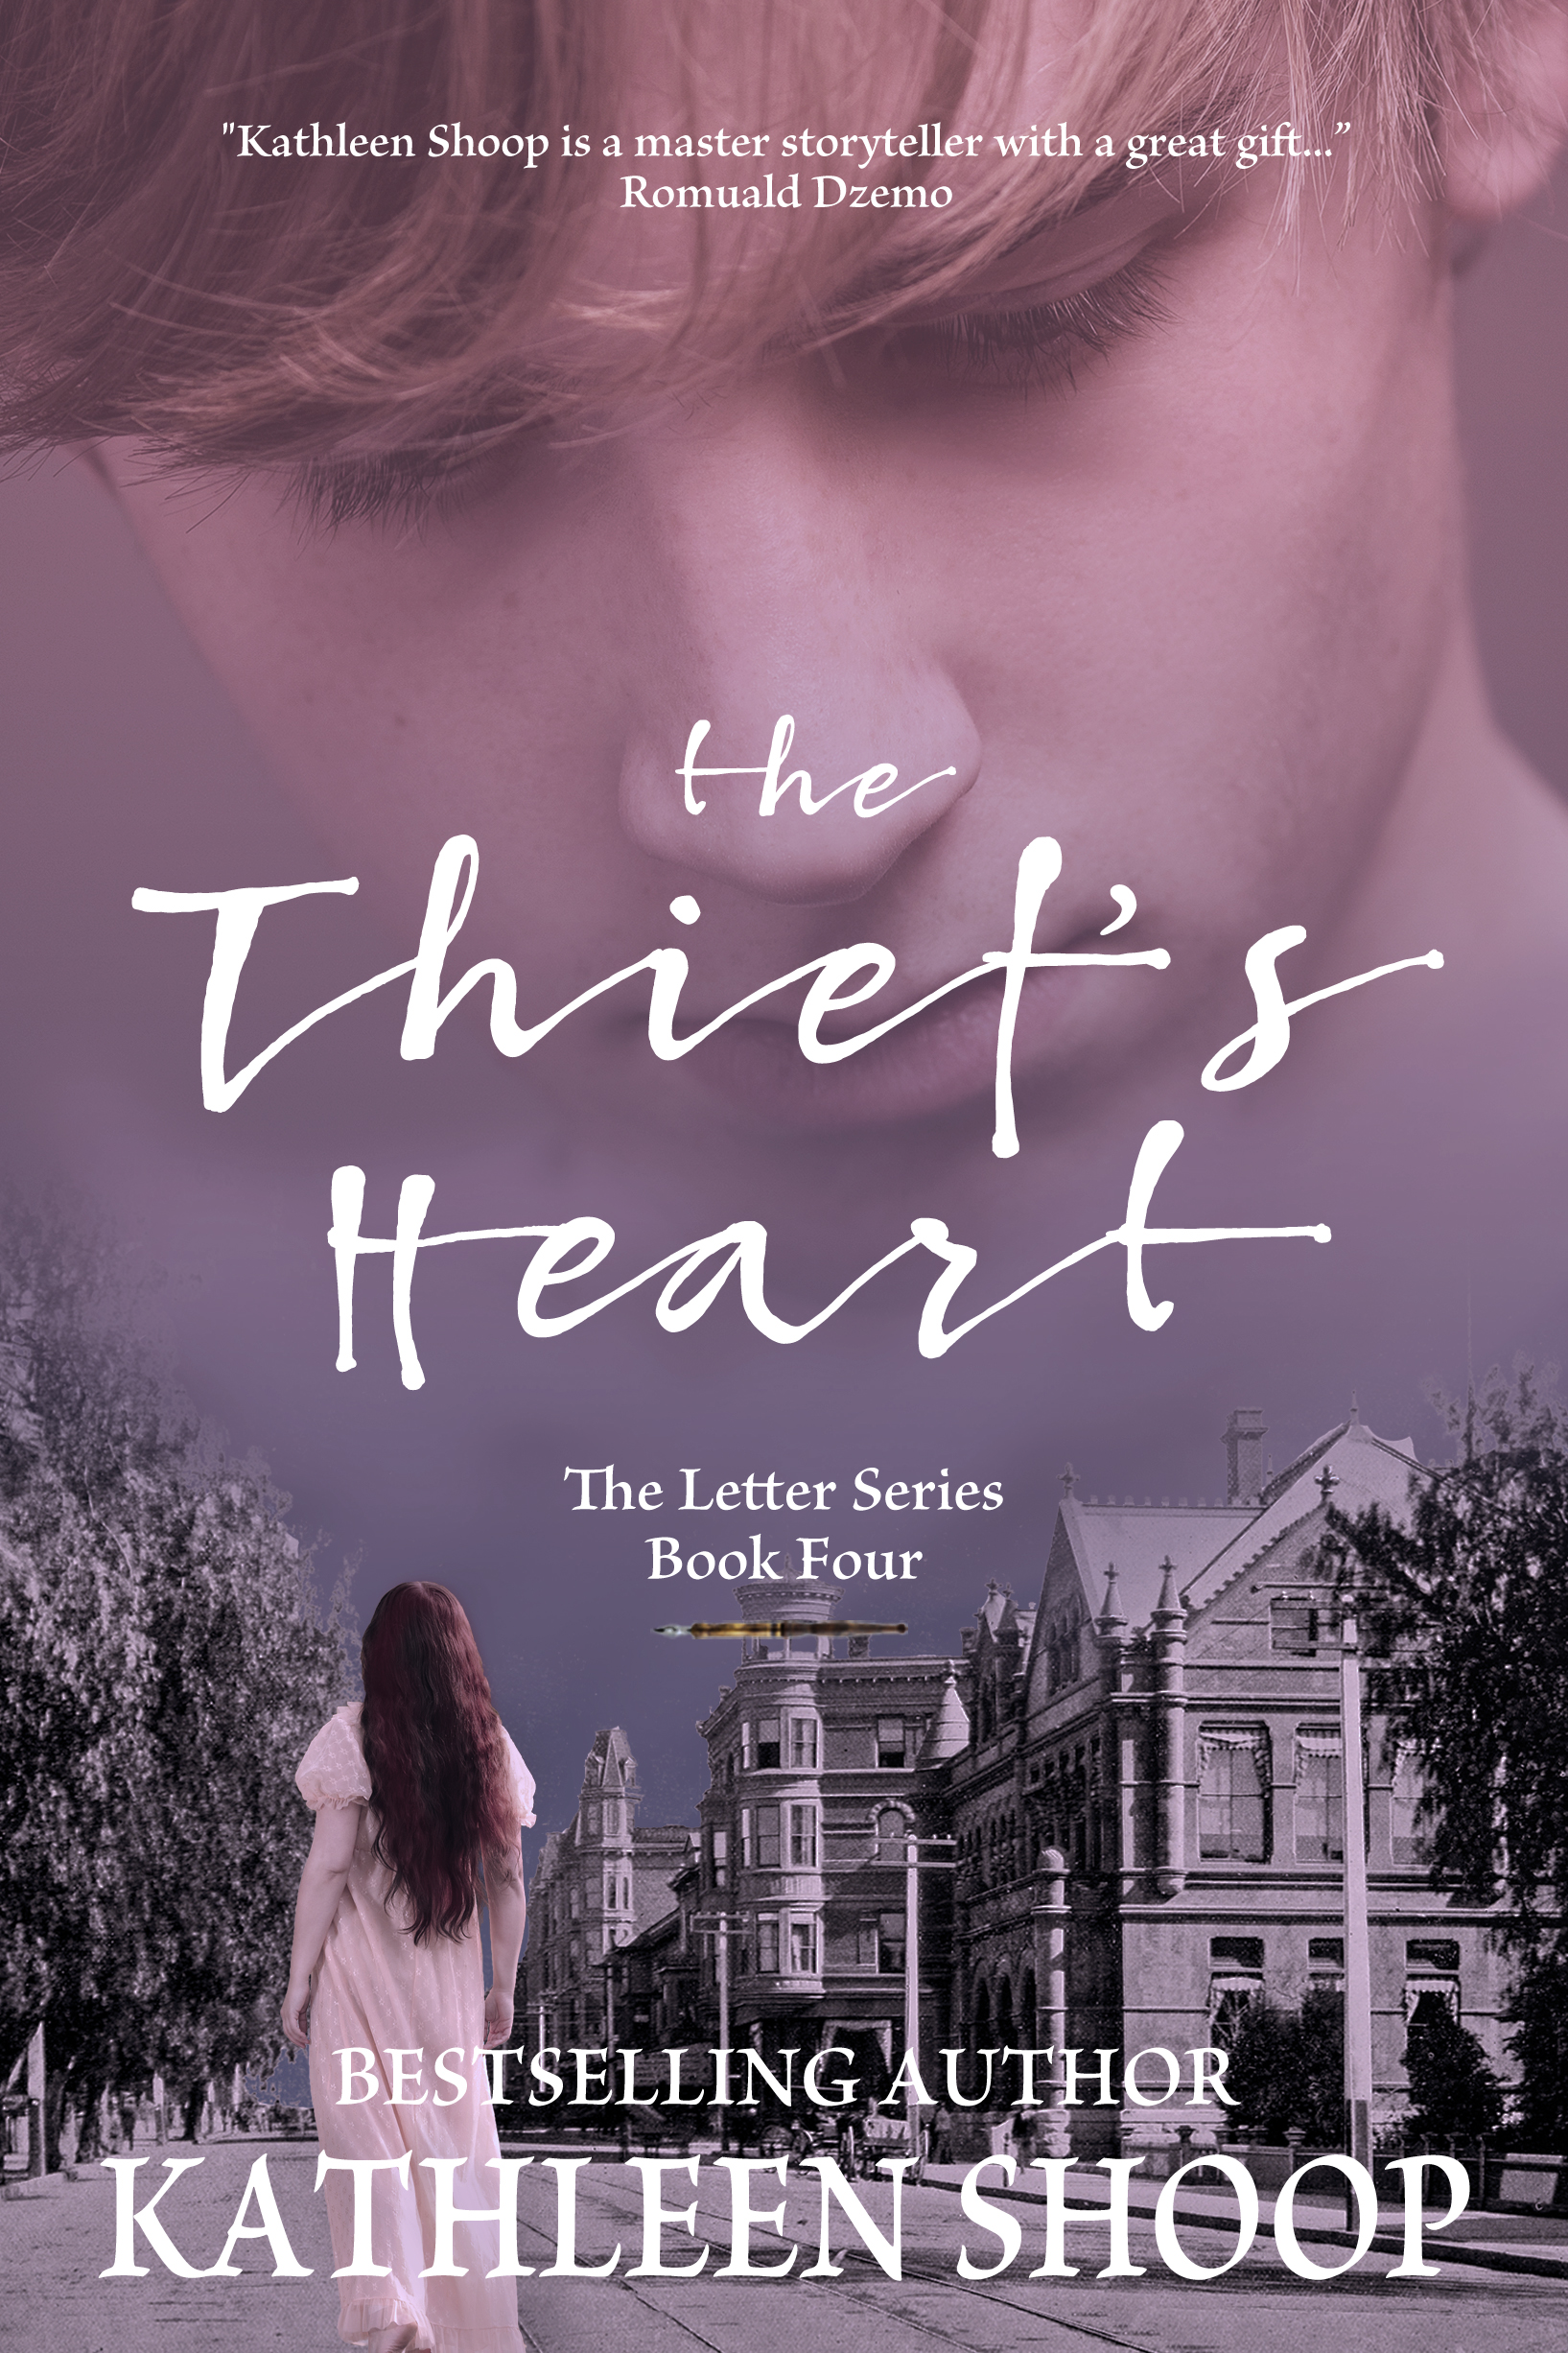 The Thief's Heart - The Letter Series Book Four - Kathleen Shoop